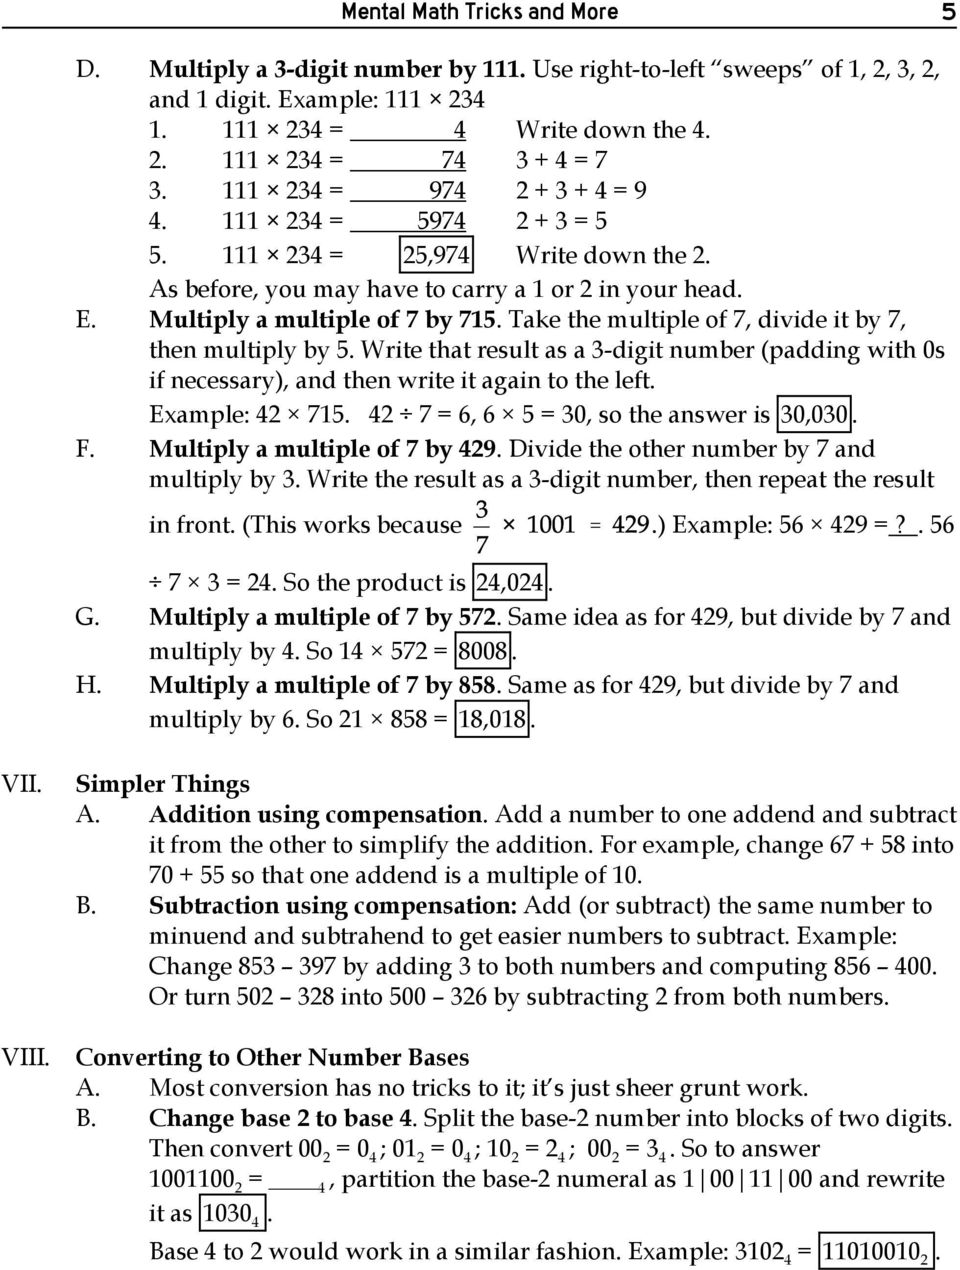 Mental math tricks and more pdf take the multiple of 7 divide it by 7 then multiply by 5 fandeluxe Images